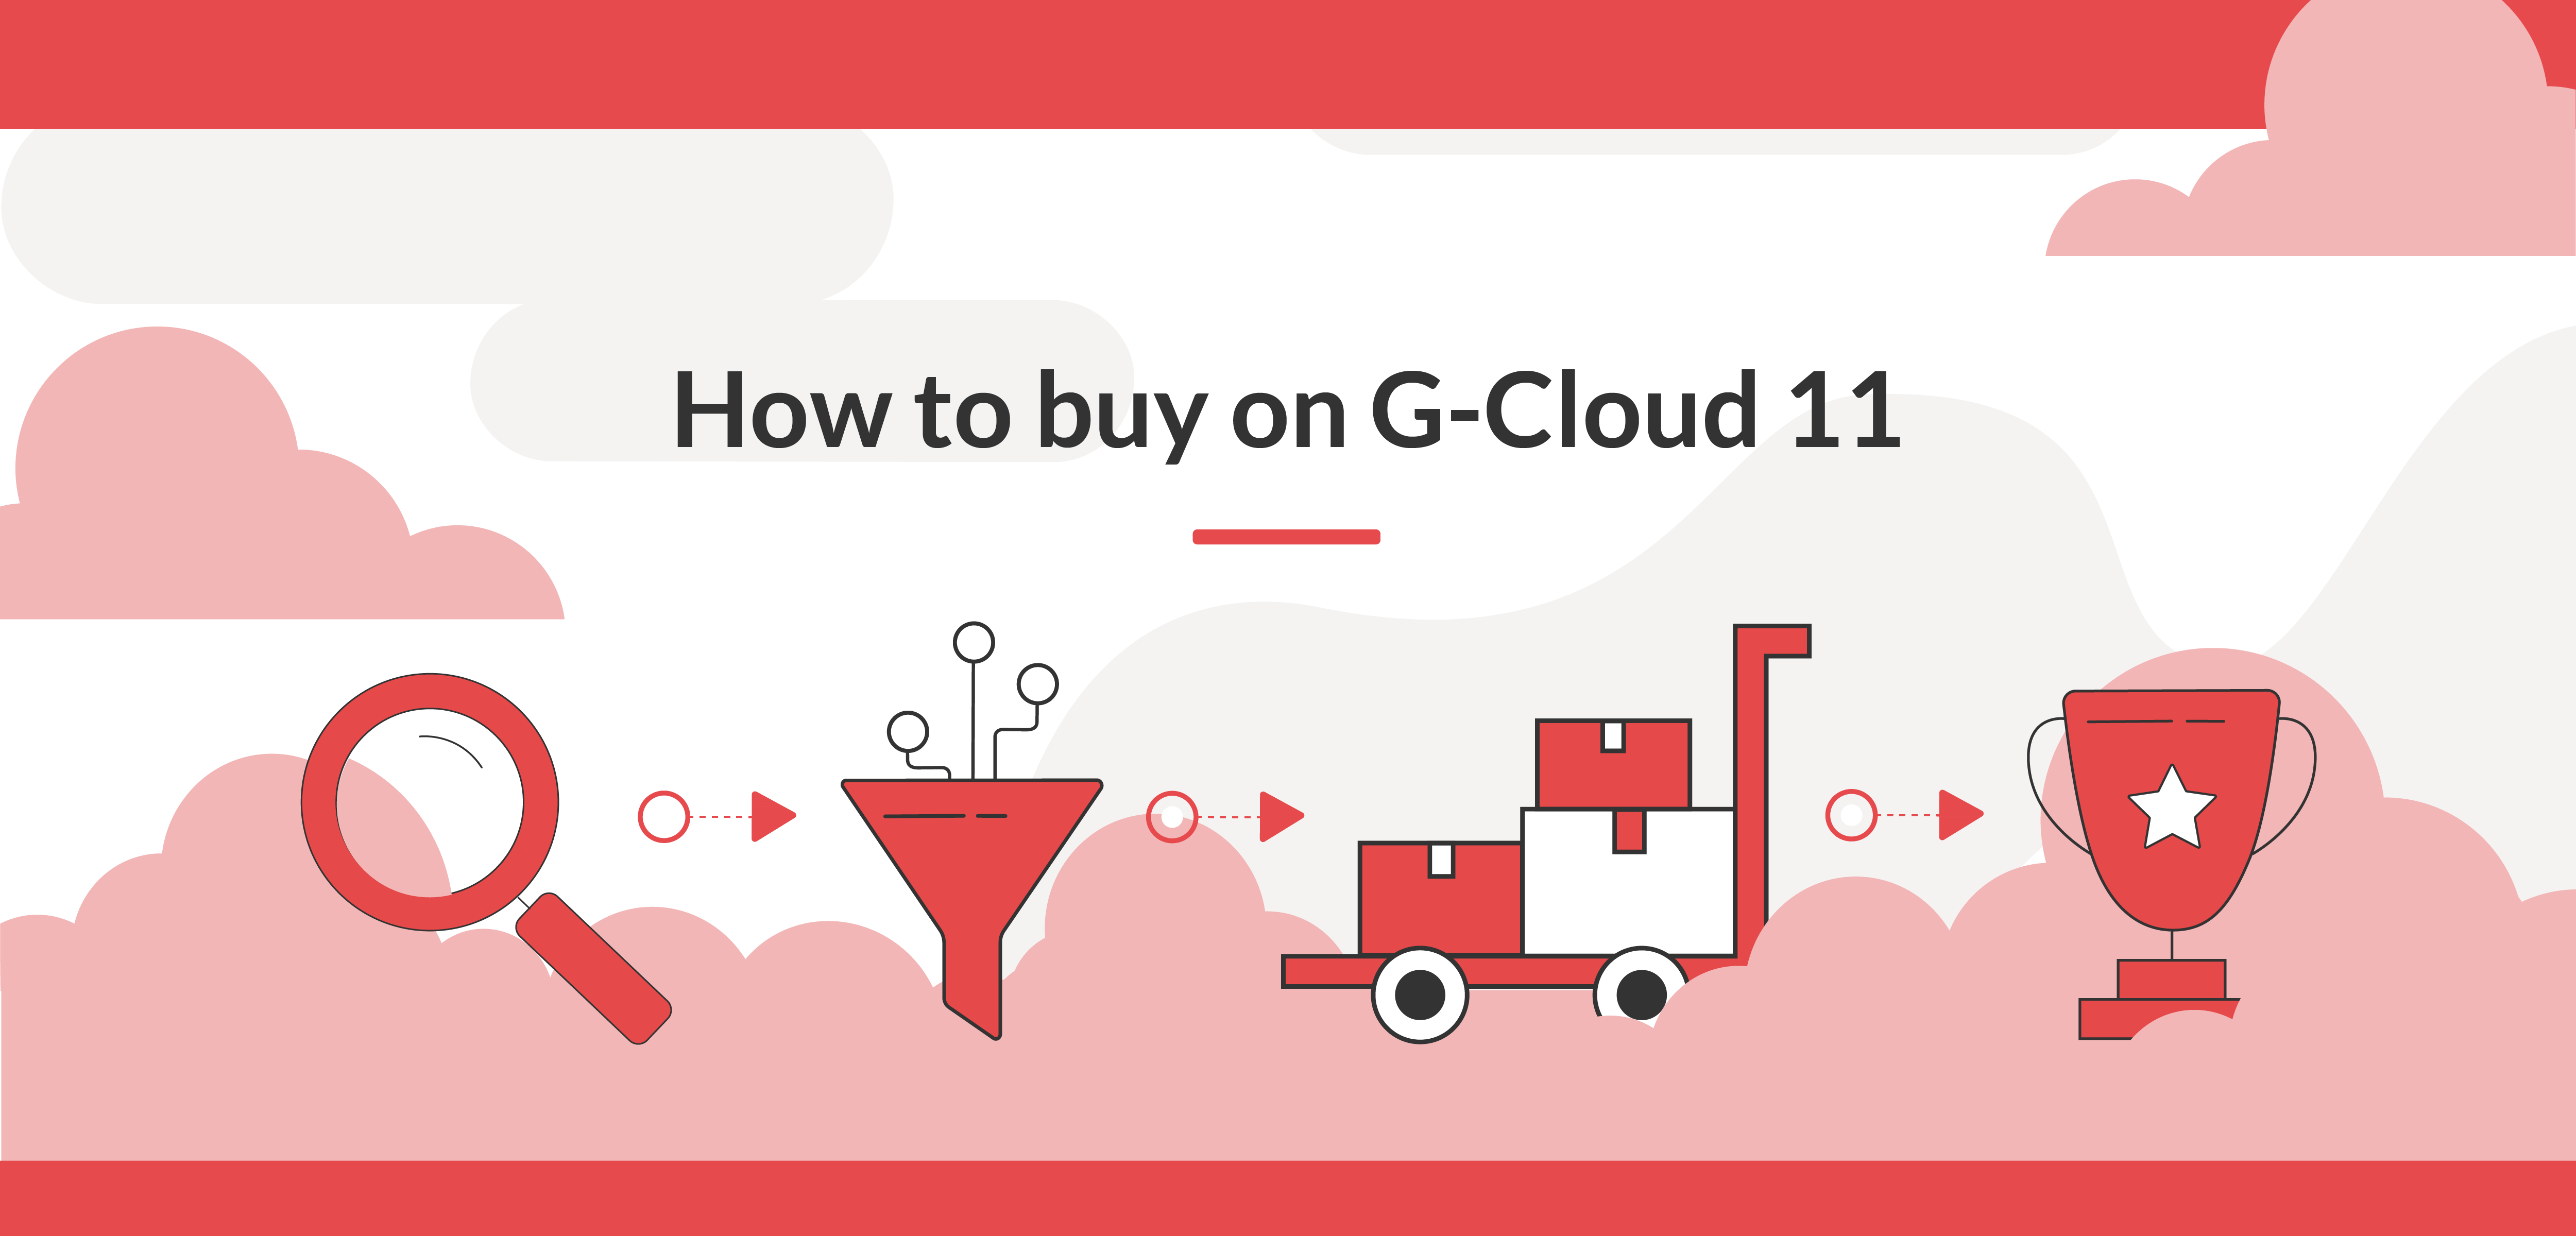 Masabi_how_to_buy_on_GCloud11_blog